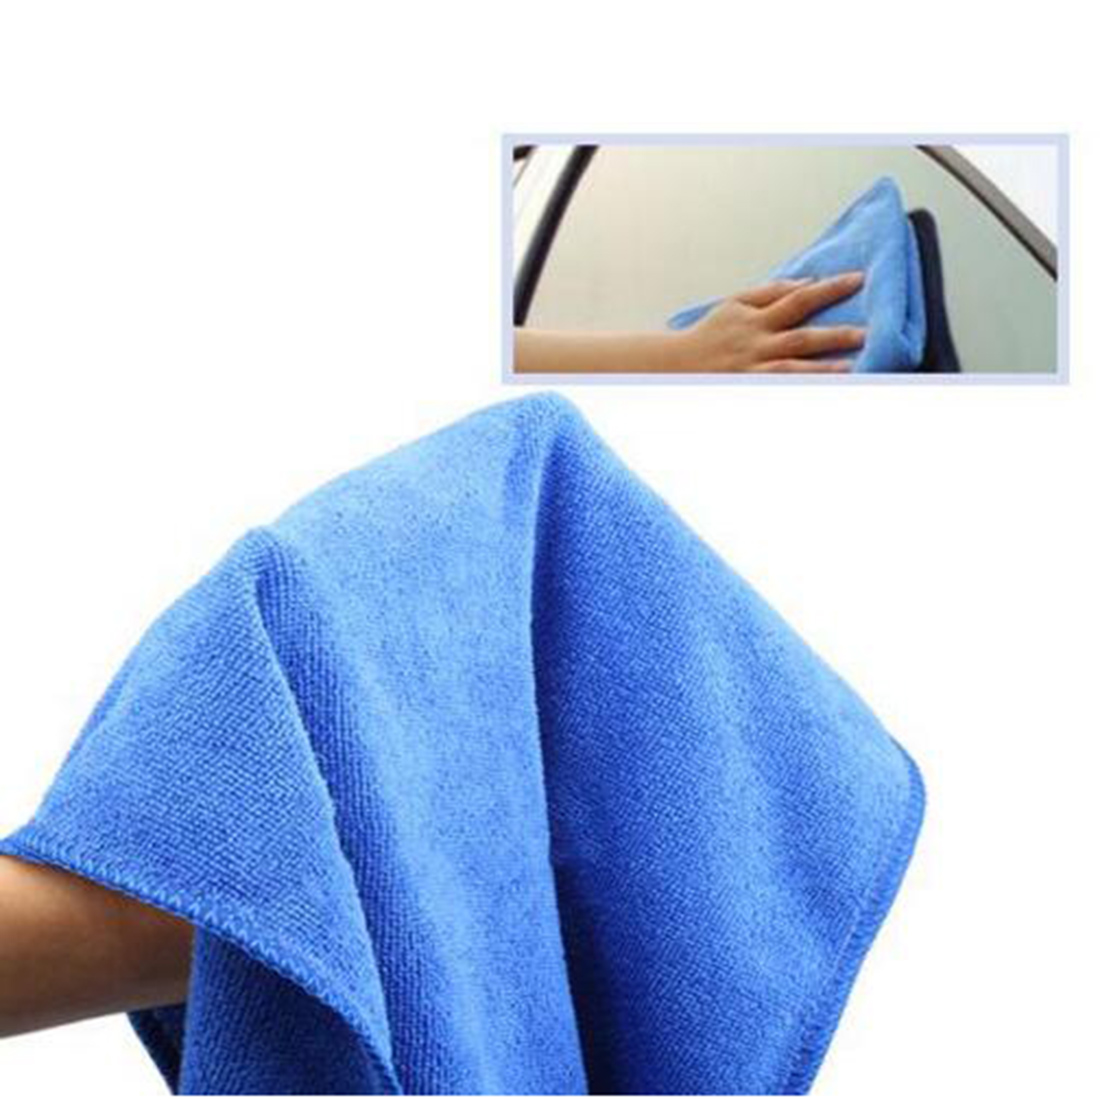 Microfiber Towel Super Water Car Wash Drying Soft Dry Cleaning Absorbant Cloth Random Color(China (Mainland))